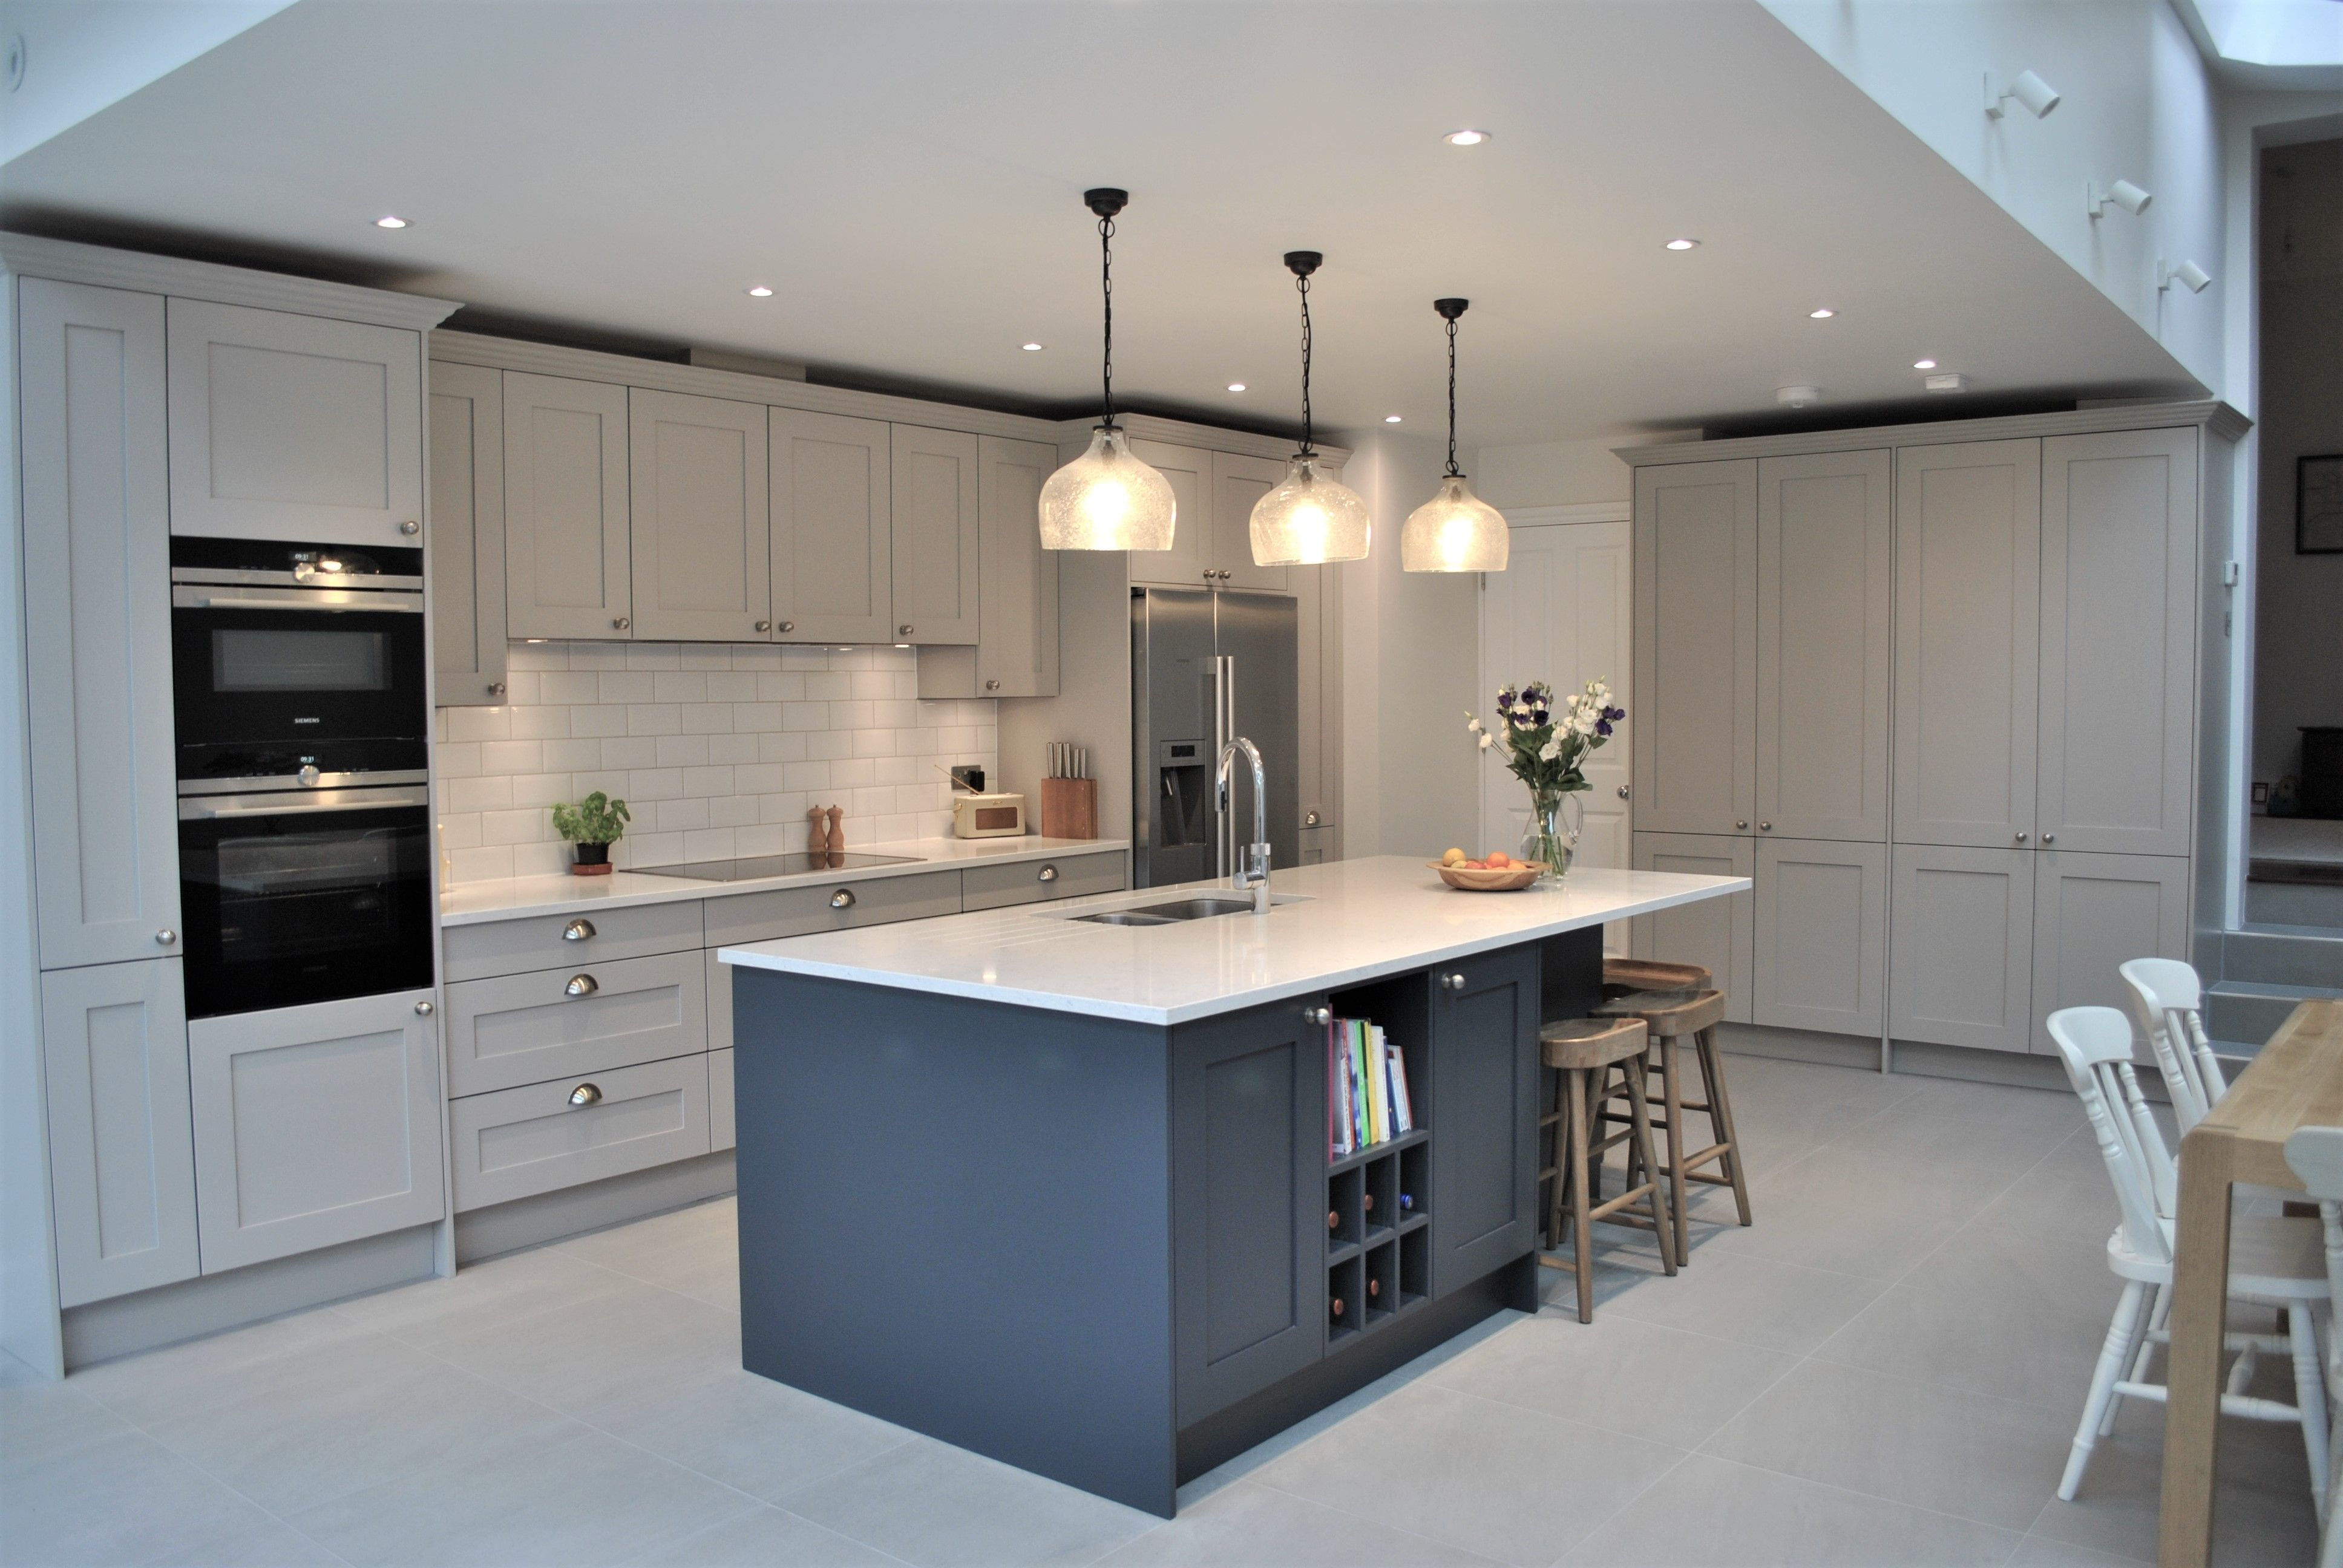 Clapham Shaker Kitchen: Pin By Eclectic Interiors On Shaker Kitchen Modern In 2019